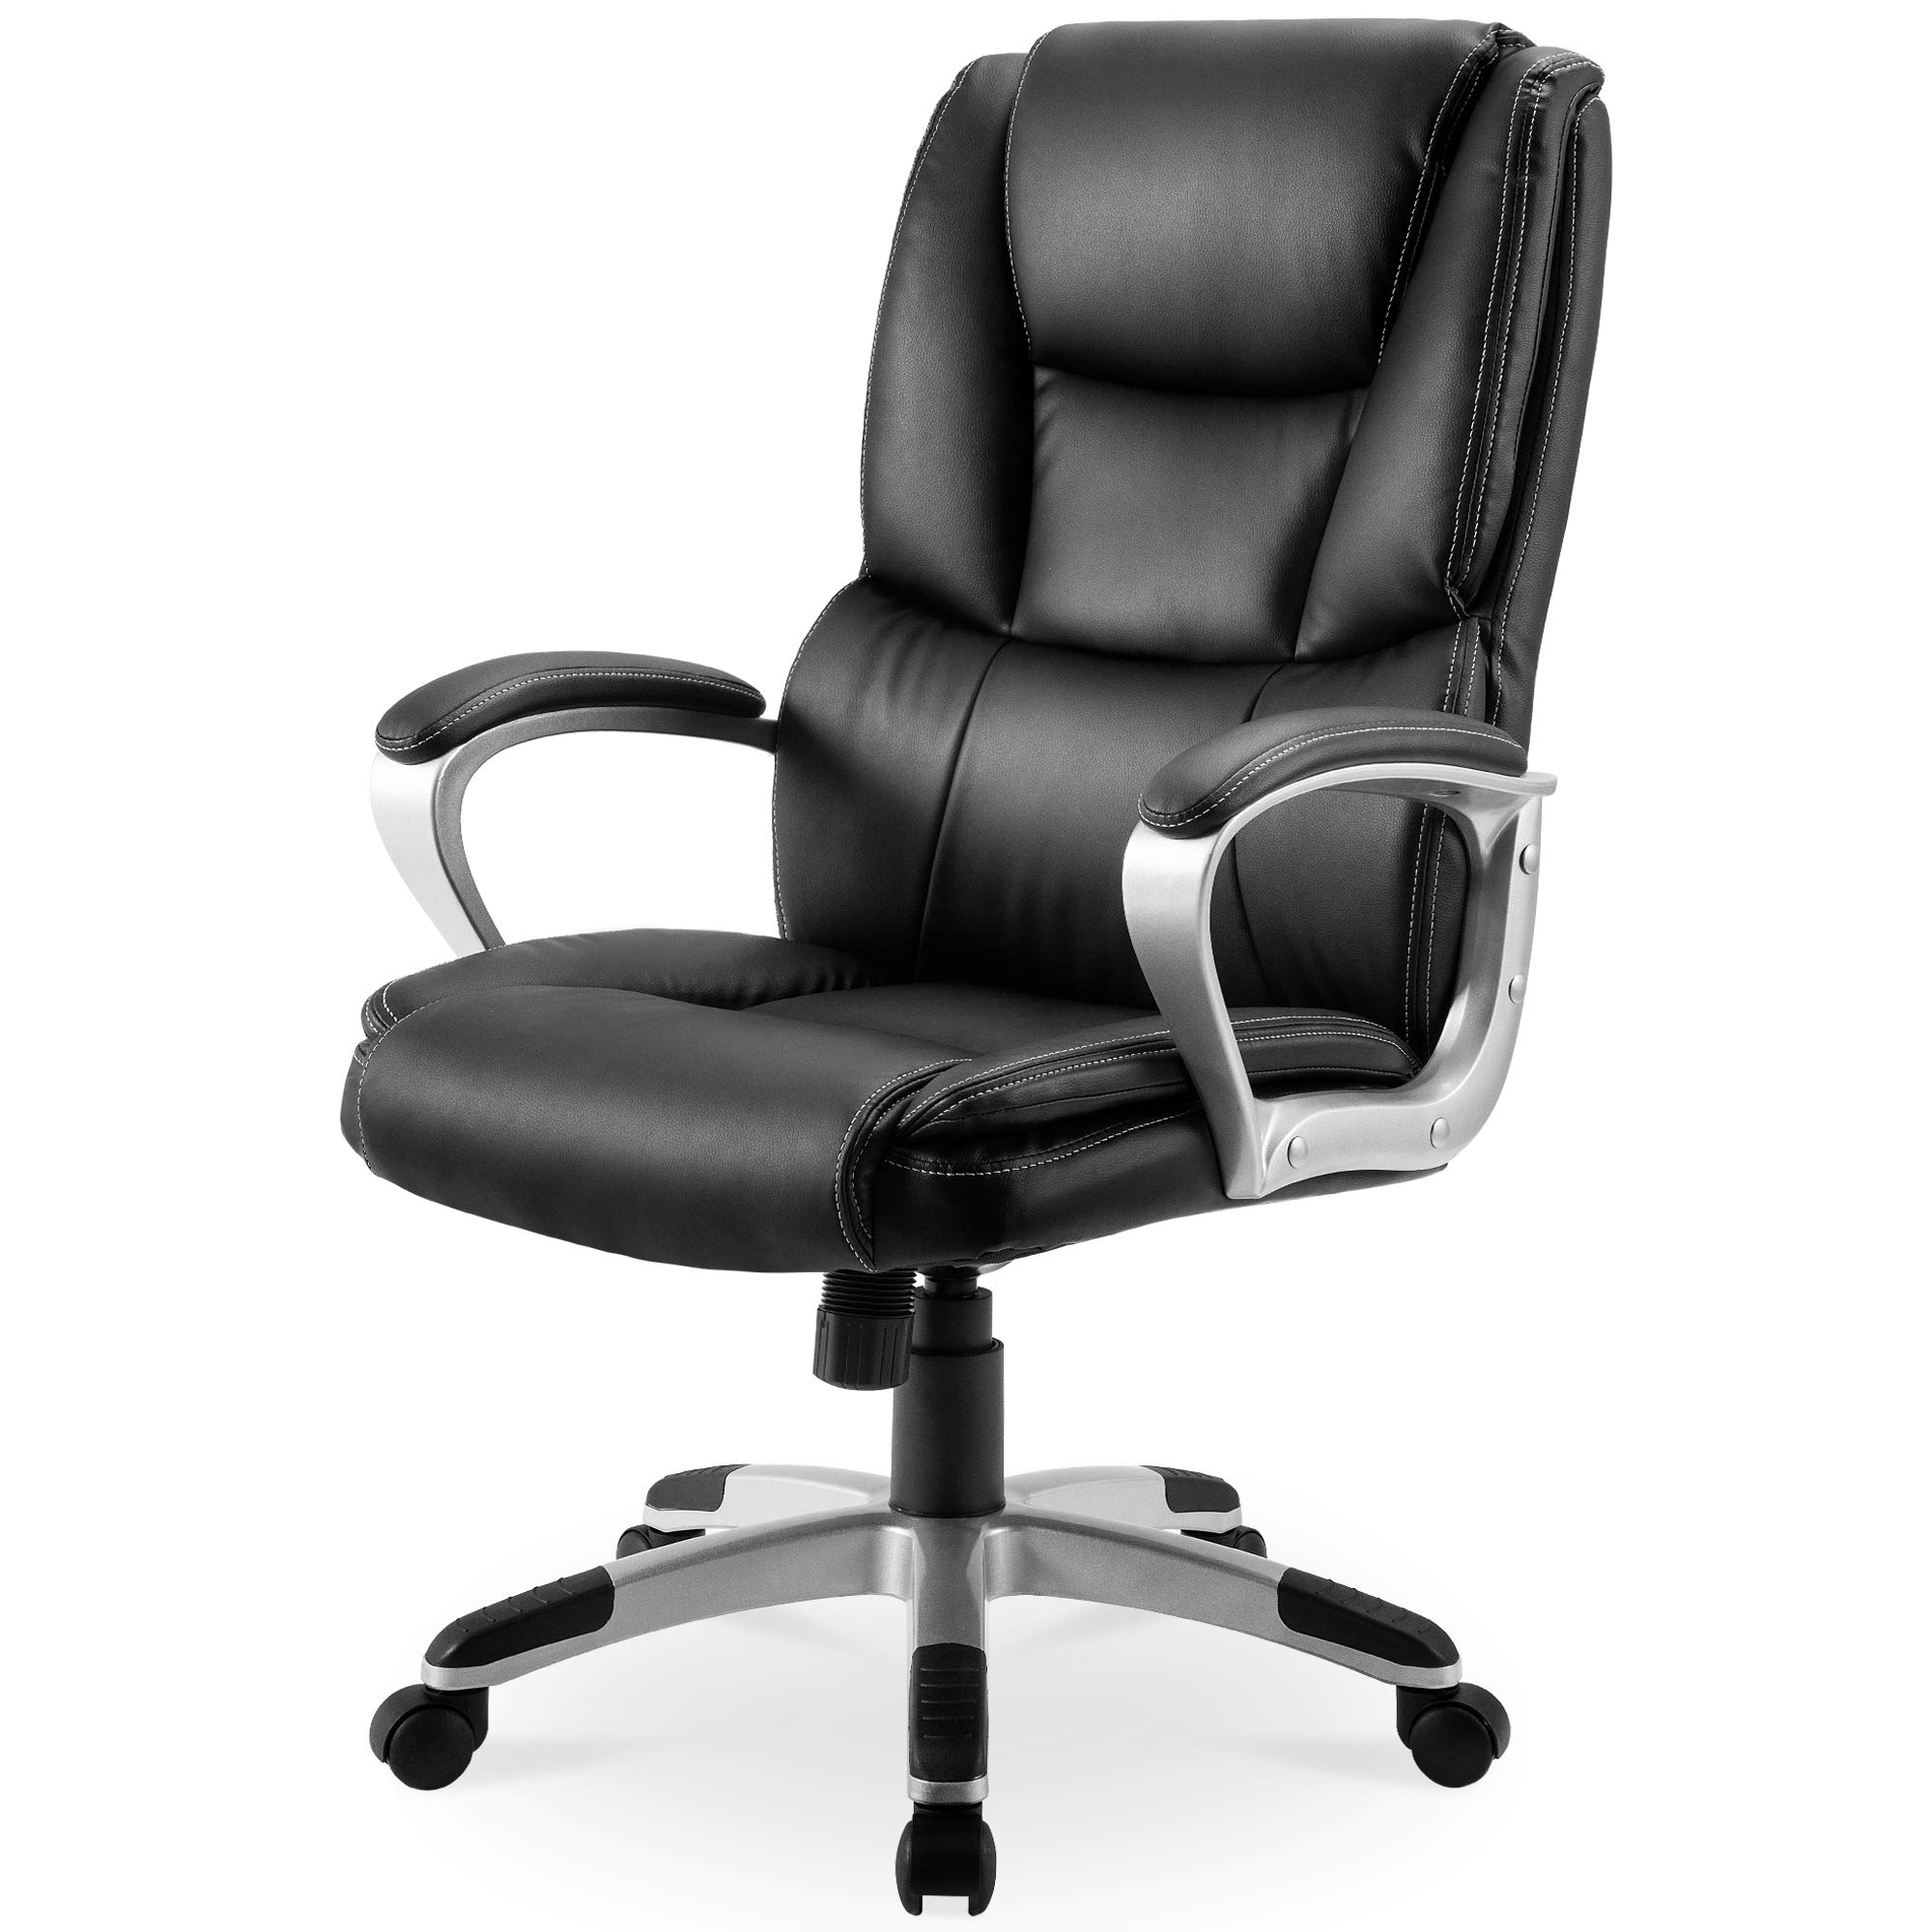 Rex Leather Executive Office Chair High-Back Adjustable Tilt Angle, Thick Padding for Comfort and Ergonomic Design for Lumbar Support, Black